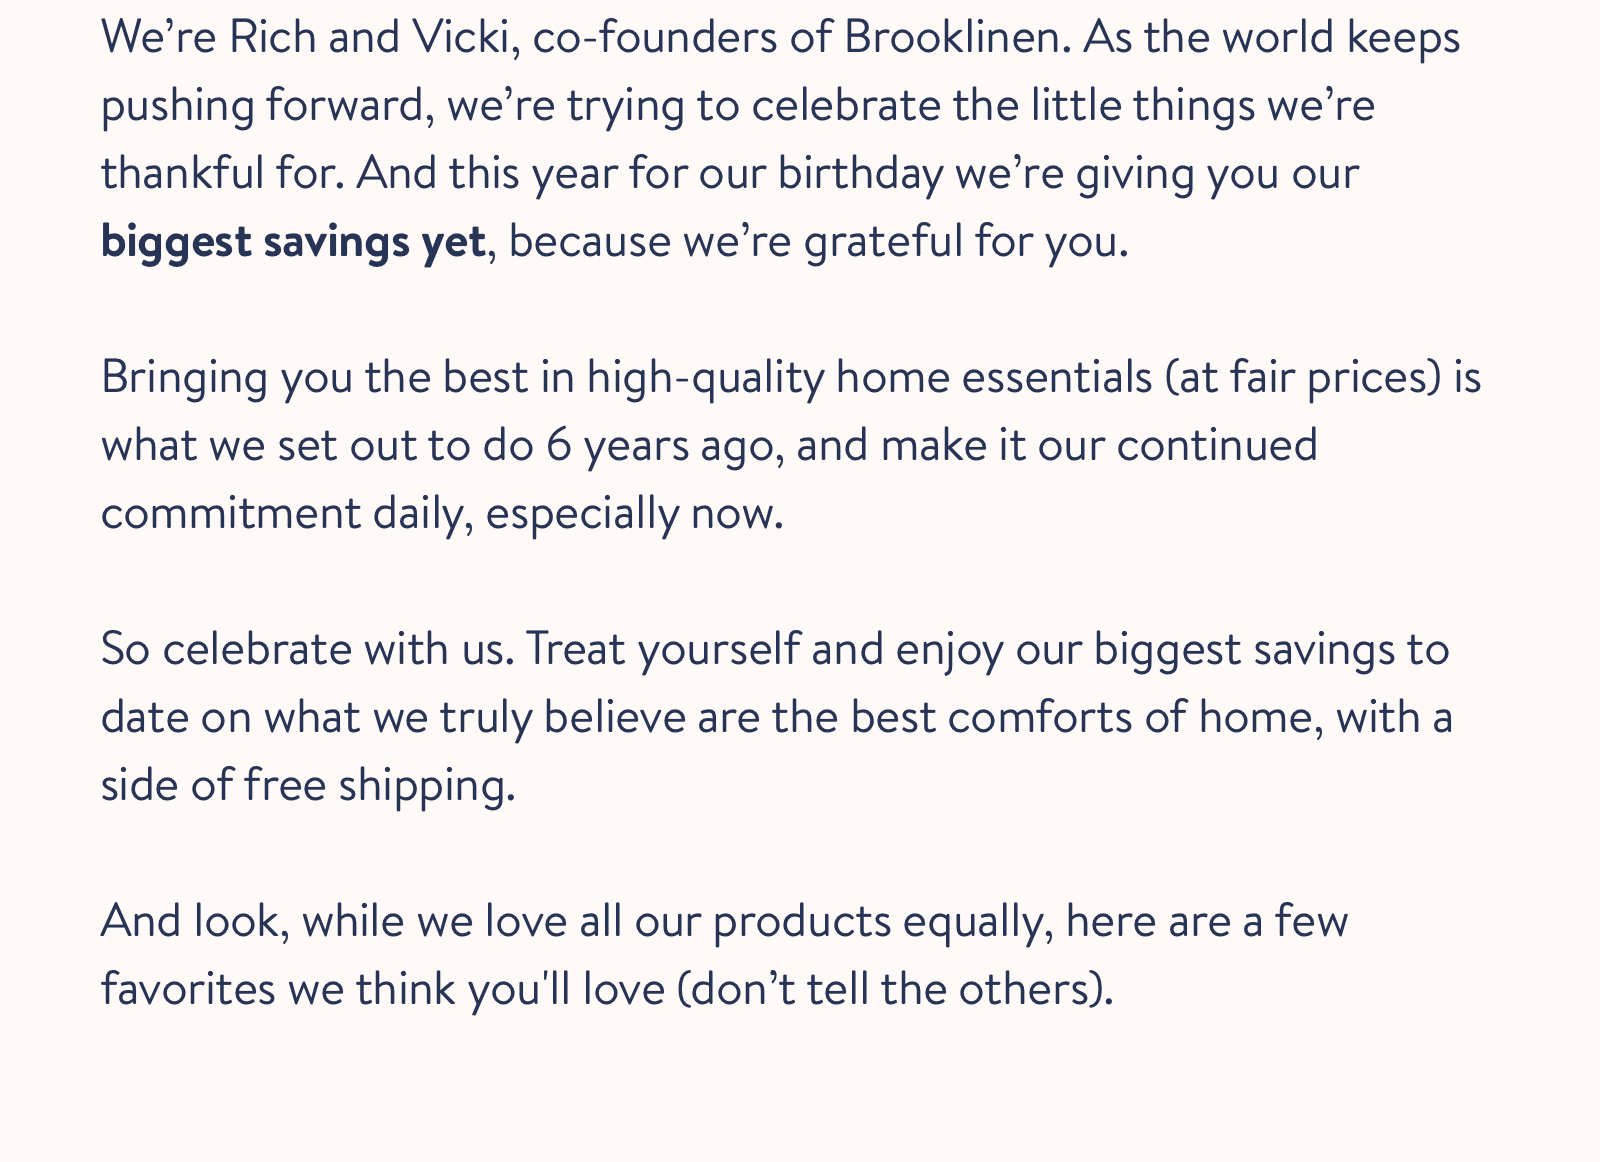 We're Rich and Vicki, co-founders of Brooklinen. As the world keeps pushing forward, we're trying to celebrate the little things we're thankful for. And this year for our birthday we're giving you our biggest savings yet, because we're grateful for you. Bringing you the best in high-quality home essentials (at fair prices) is what we set out to do 6 years ago, and make it our continued commitment daily, especially now. So celebrate with us. Treat yourself and enjoy our biggest savings to date on what we truly believe are the best comforts of home, with a side of free shipping.